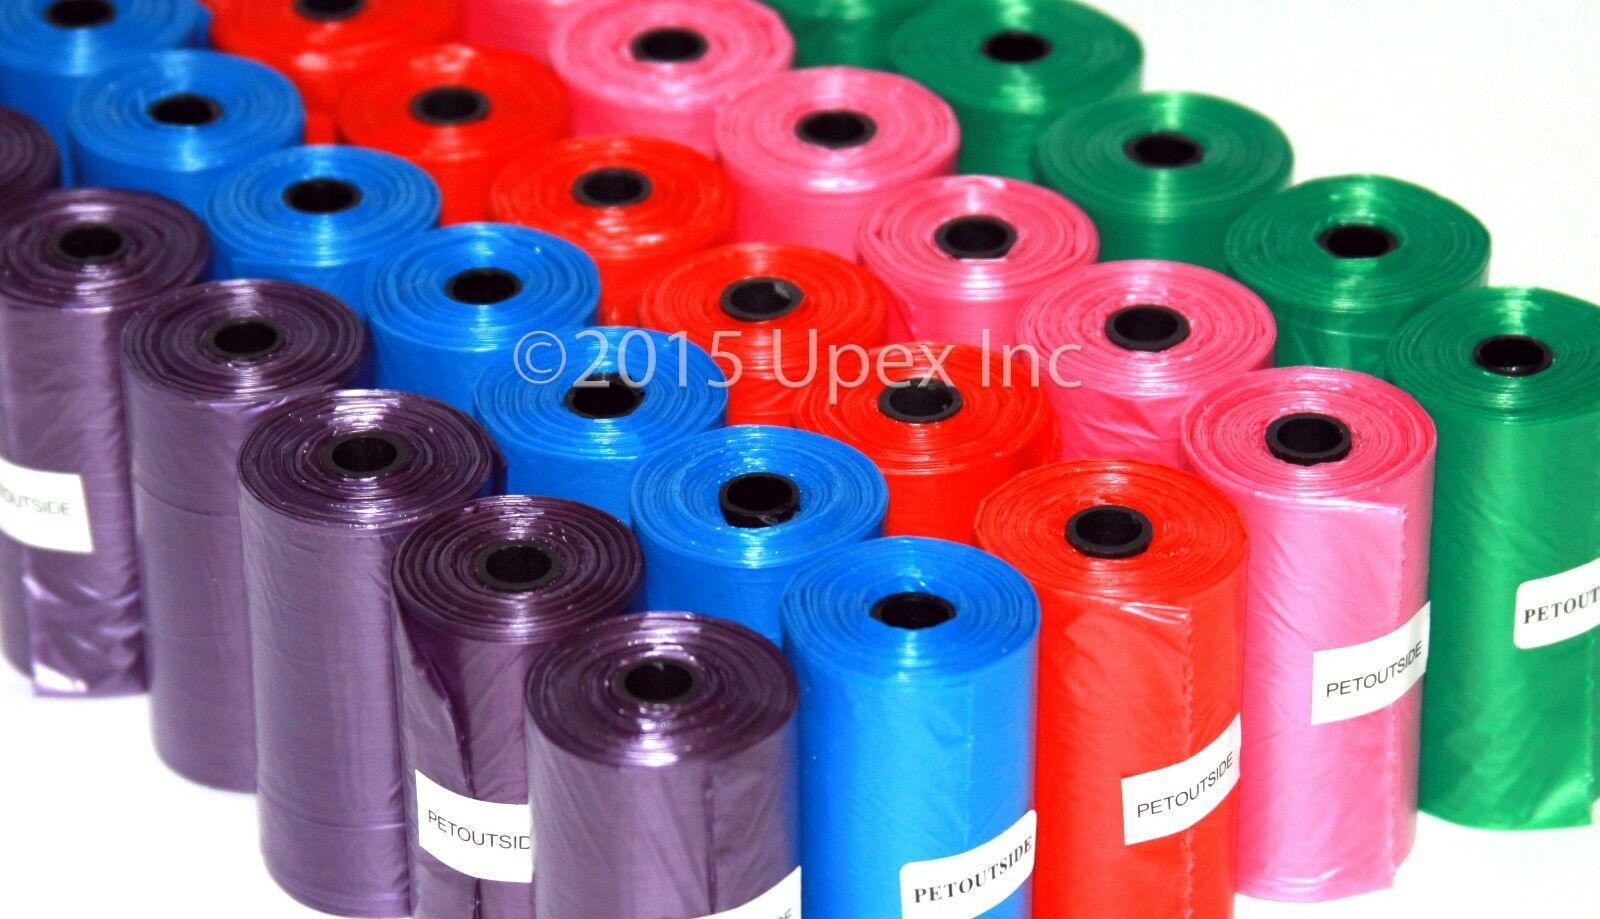 1200 Color DOG PET WASTE POOP BAGS Refill Rolls With Core Pi